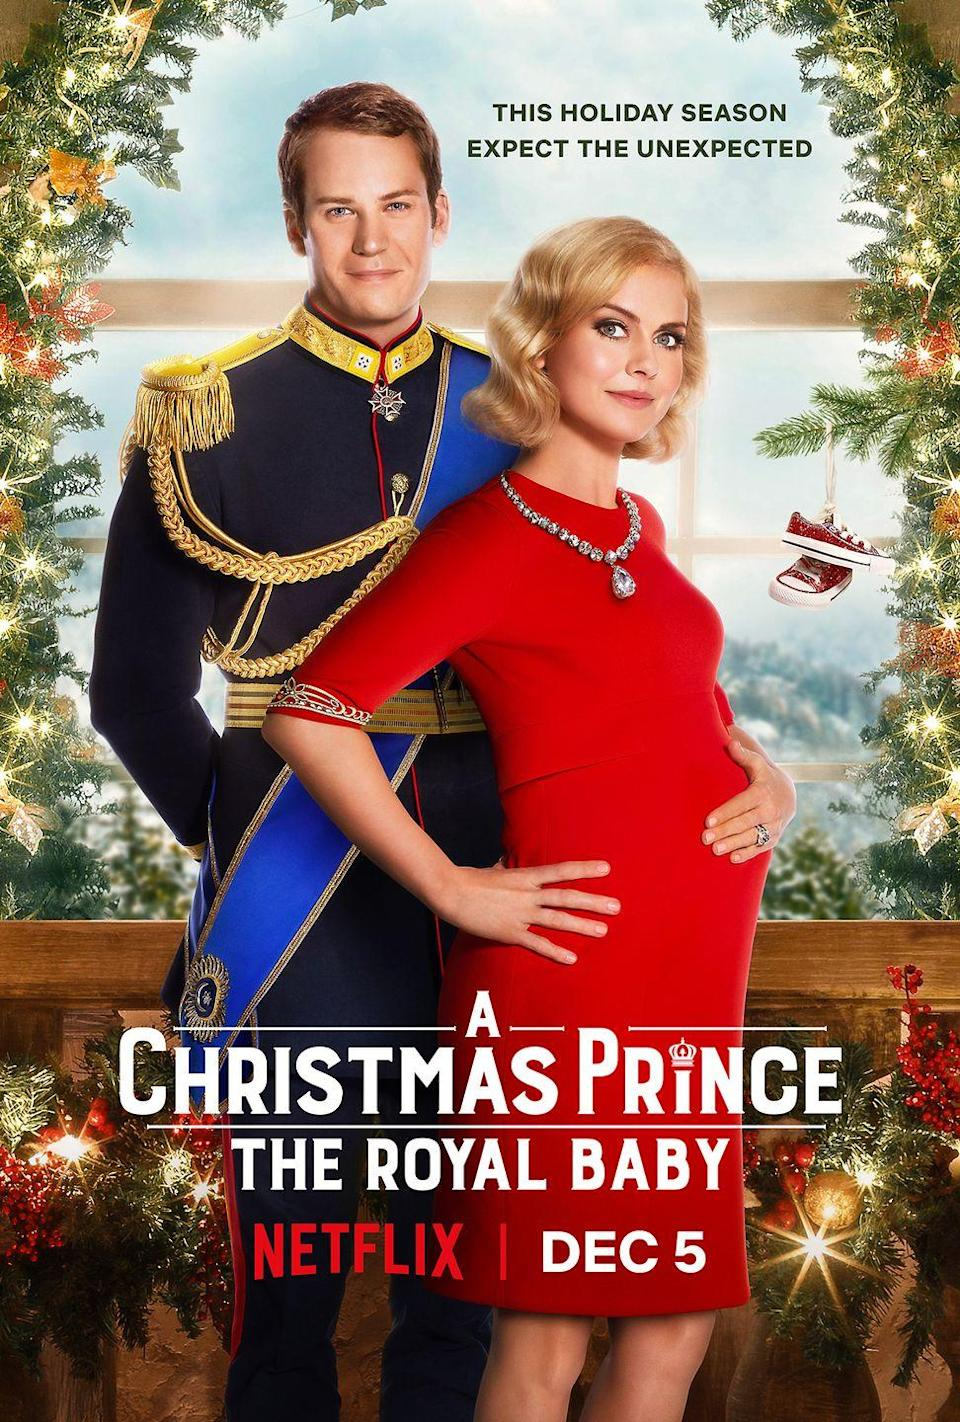 """<p>In this third installment in the <em>Christmas Prince</em> franchise, Rose McIver and Ben Lamb will return as Amber and Prince Richard, only this time they'll be welcoming a new addition to their royal family.</p><p><a class=""""link rapid-noclick-resp"""" href=""""https://www.netflix.com/title/81029841"""" rel=""""nofollow noopener"""" target=""""_blank"""" data-ylk=""""slk:STREAM NOW"""">STREAM NOW</a></p>"""